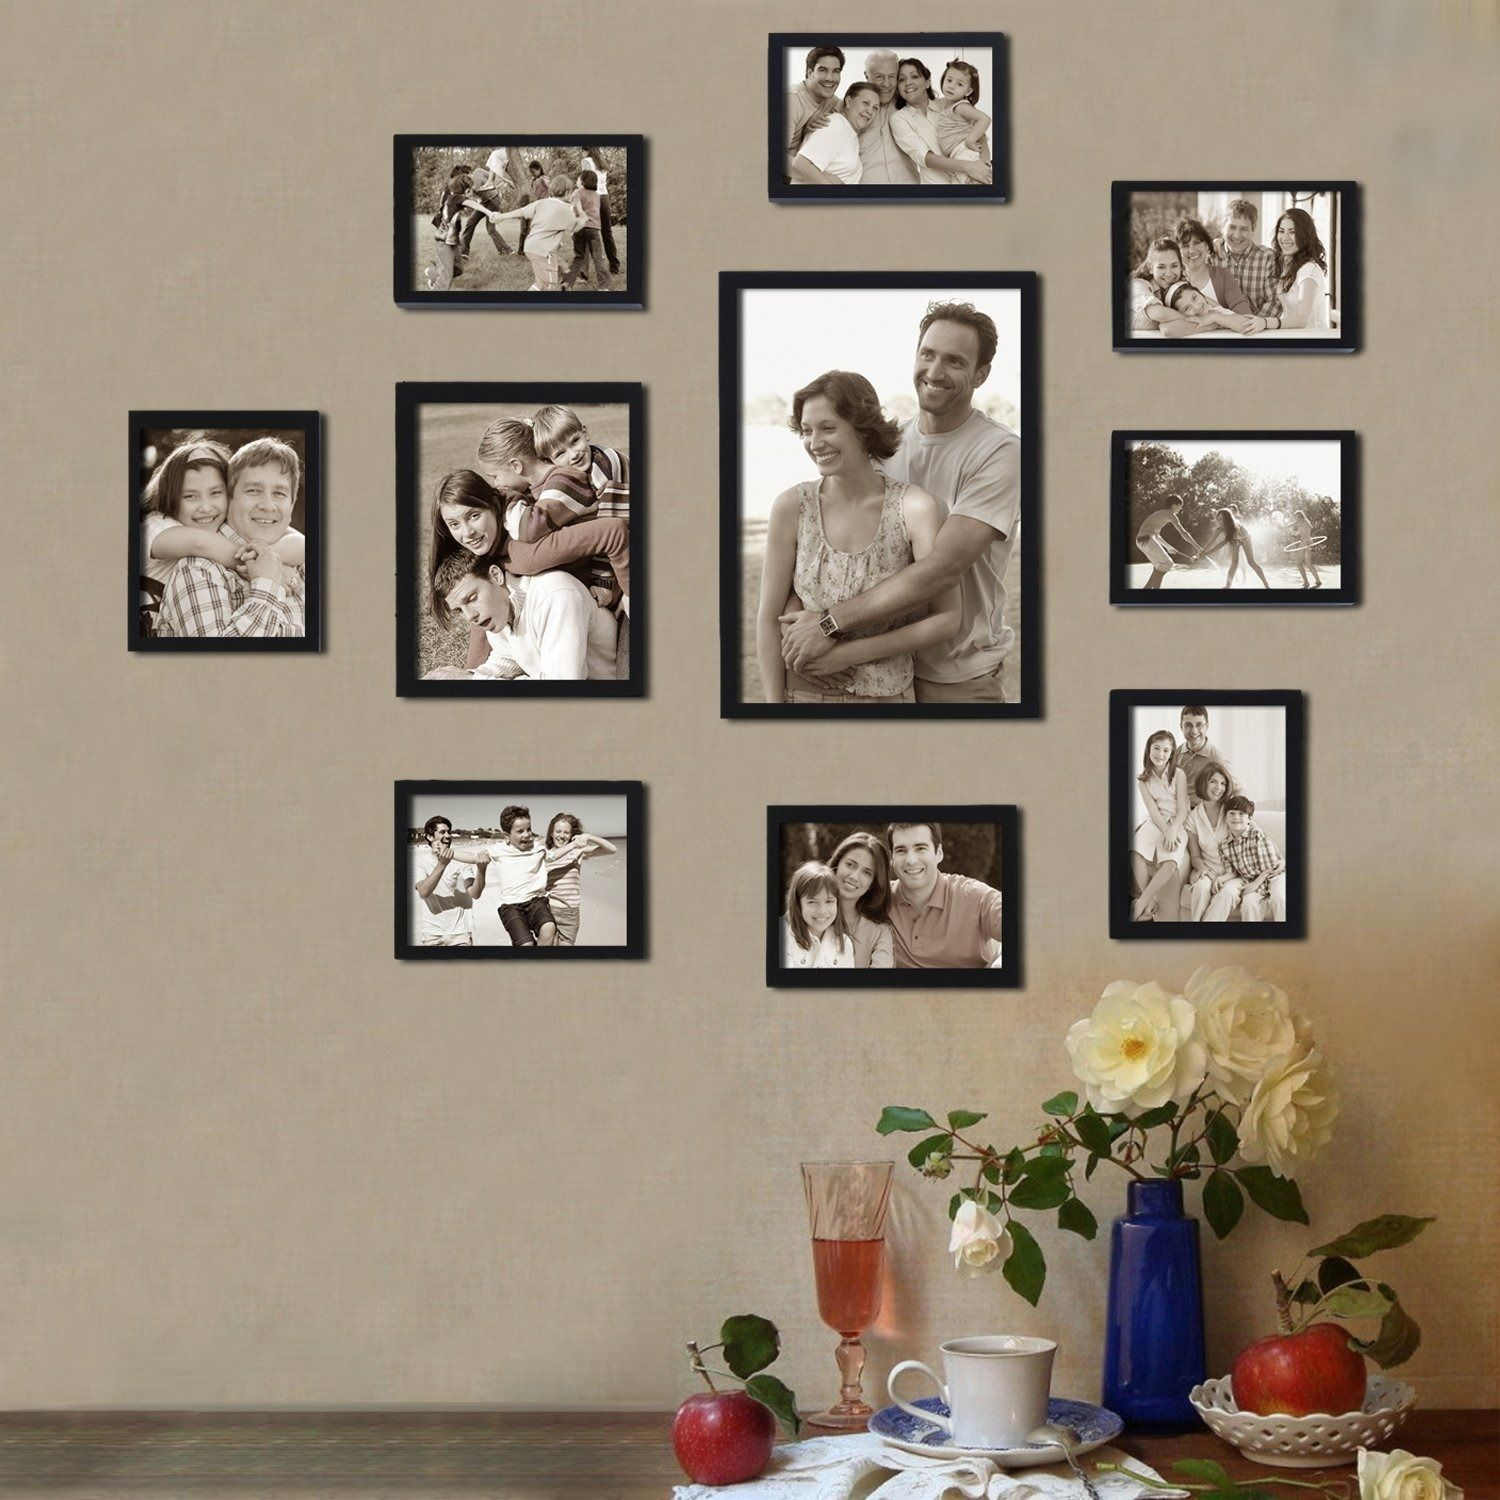 Adeco Decorative Black Wood 10 Piece Photo Frame Set For 8   4 X 6 Inch, 1    6 X 8 Inch, And 1   8 X 12 Inch Pictures (Adeco 10 Pieces Picture Frame  Set, ...